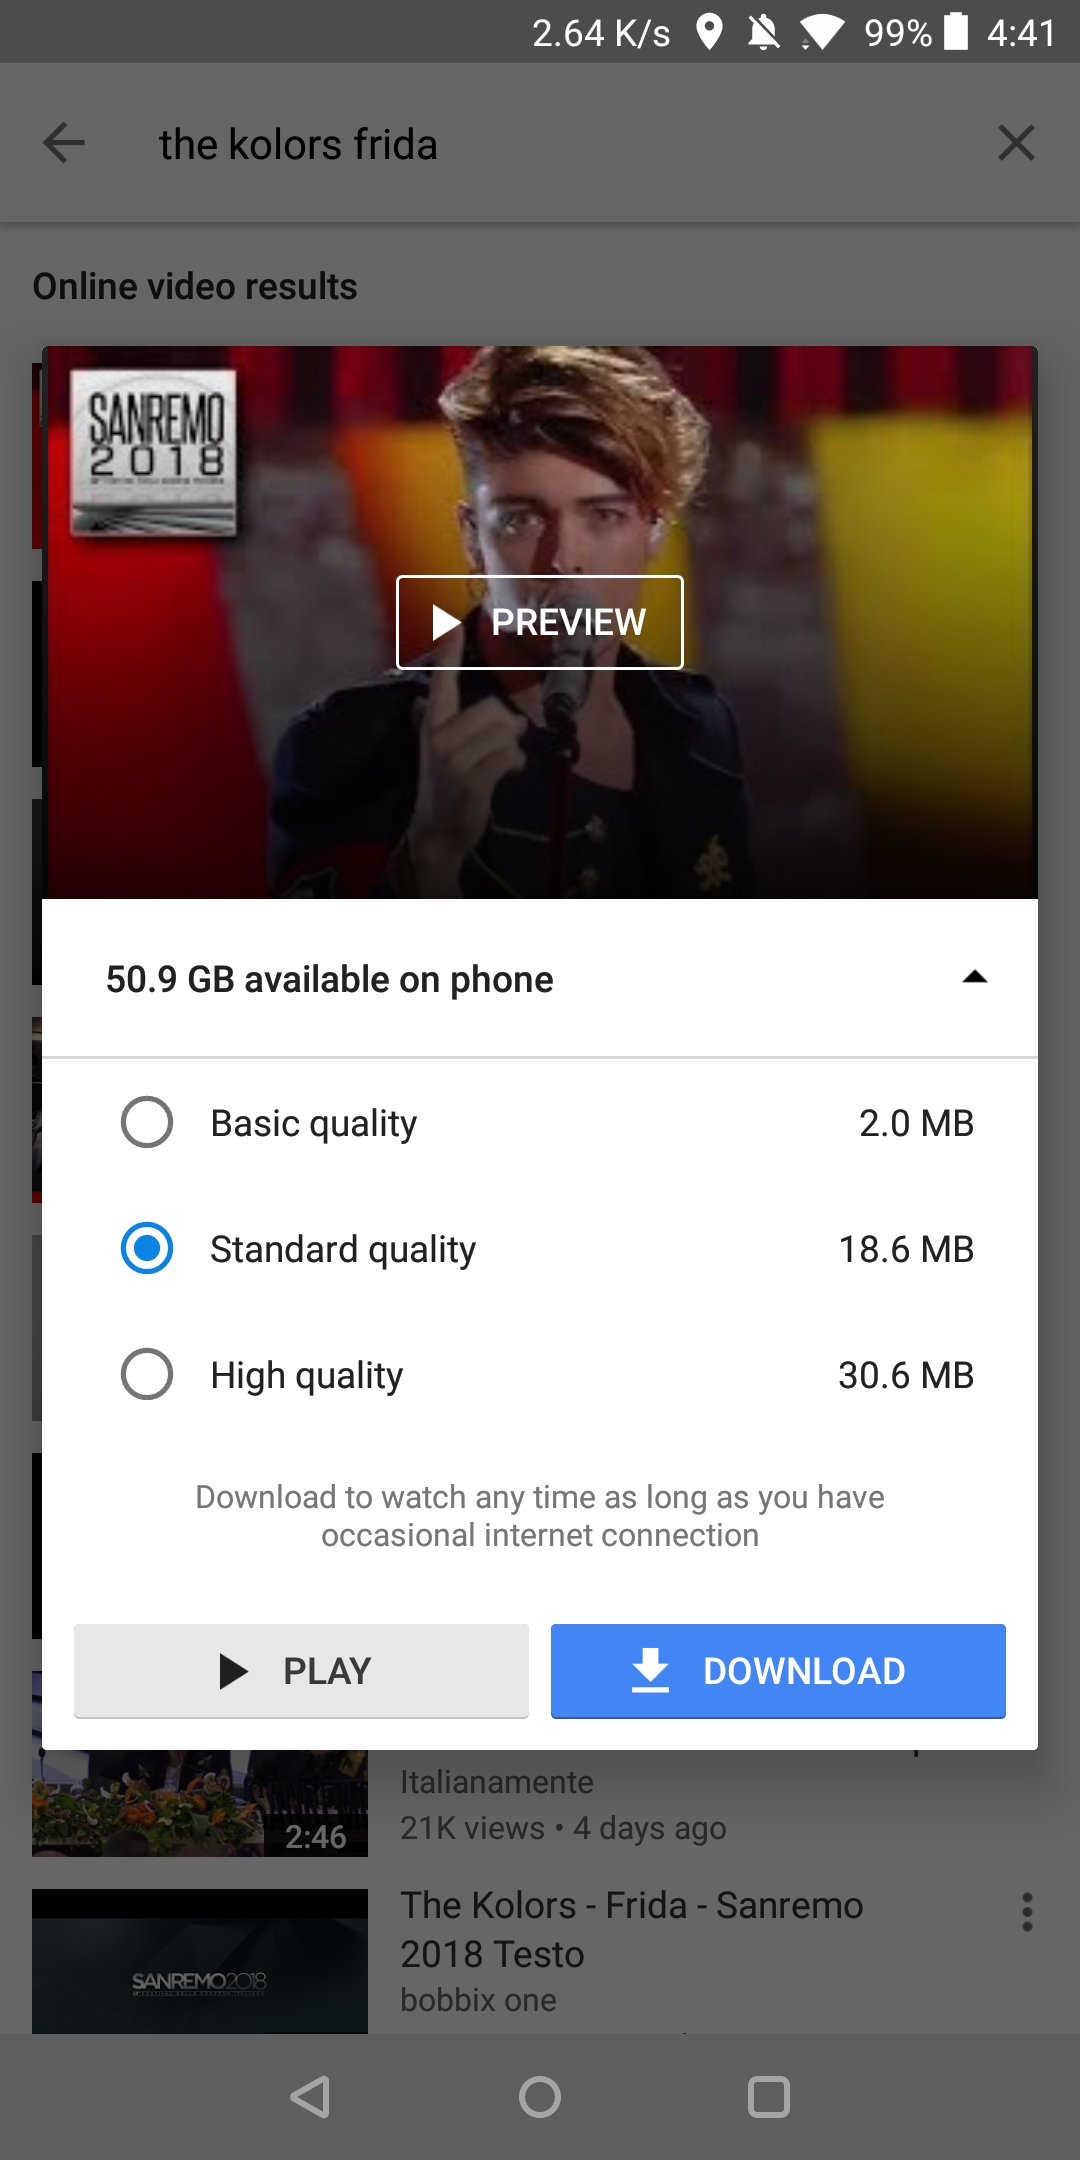 Youtube Go L Application Officielle Pour Télécharger Les: YouTube Go V1.01 Brings Double Tap To Seek Controls And